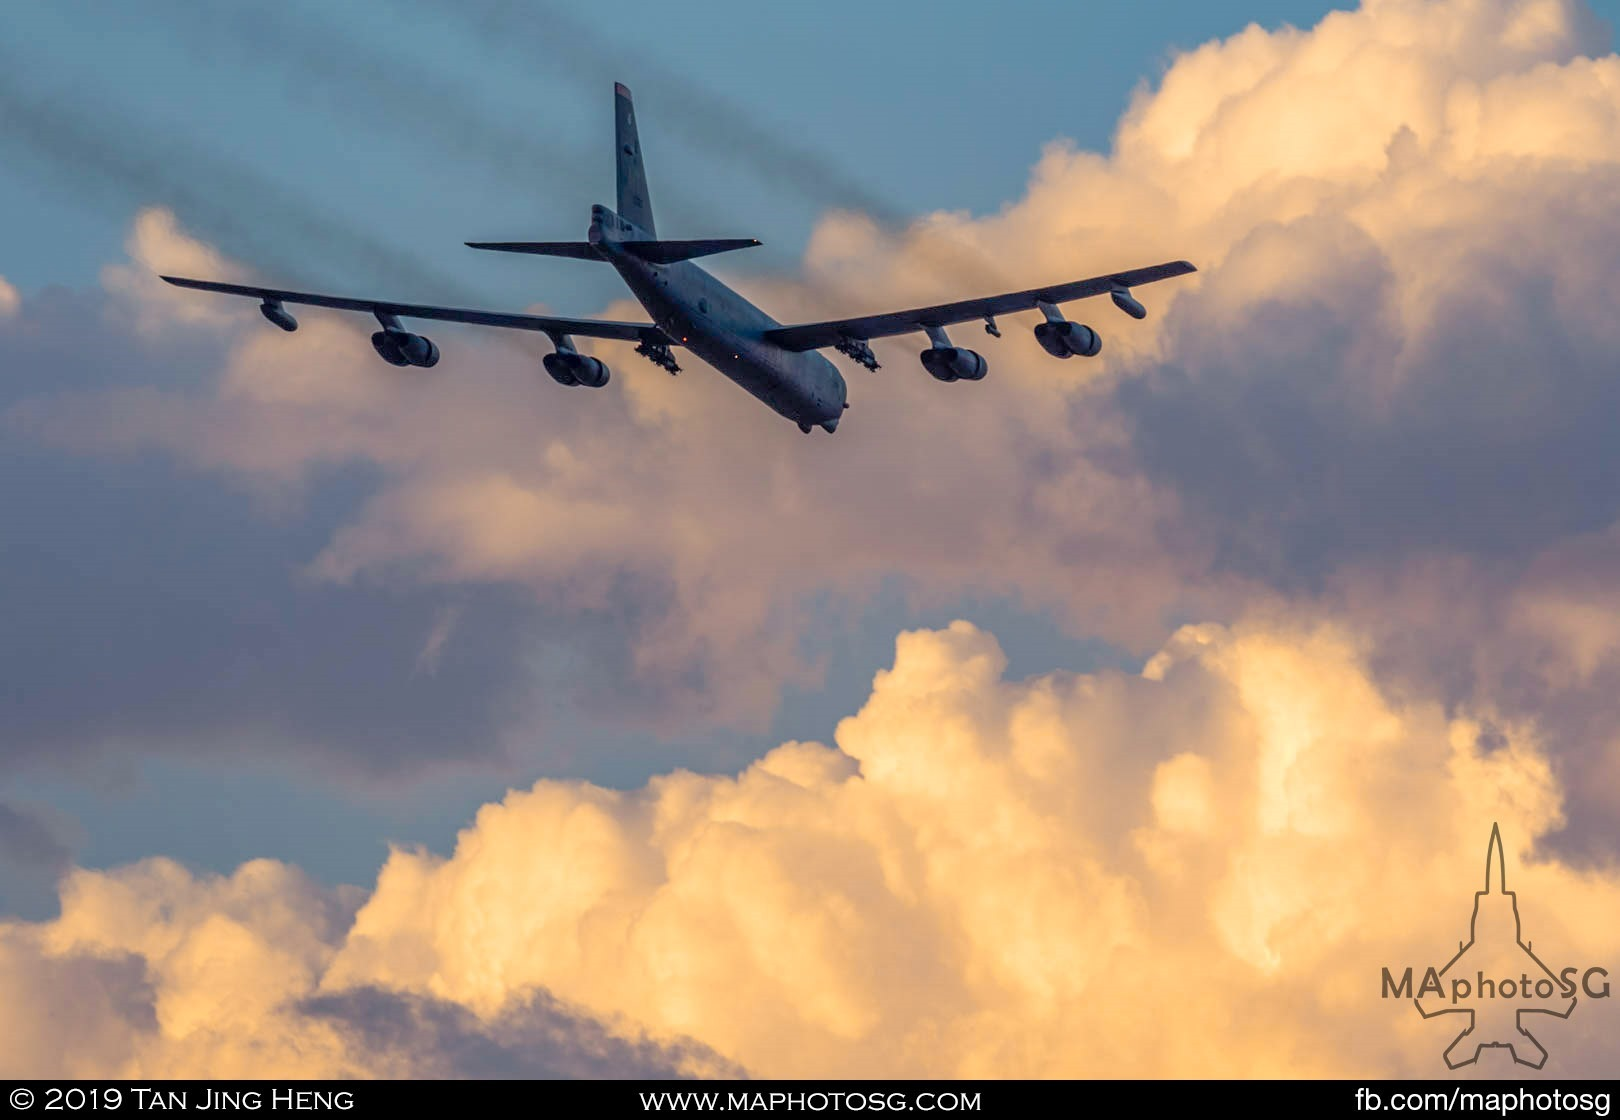 USAF B-52 Stratofortress